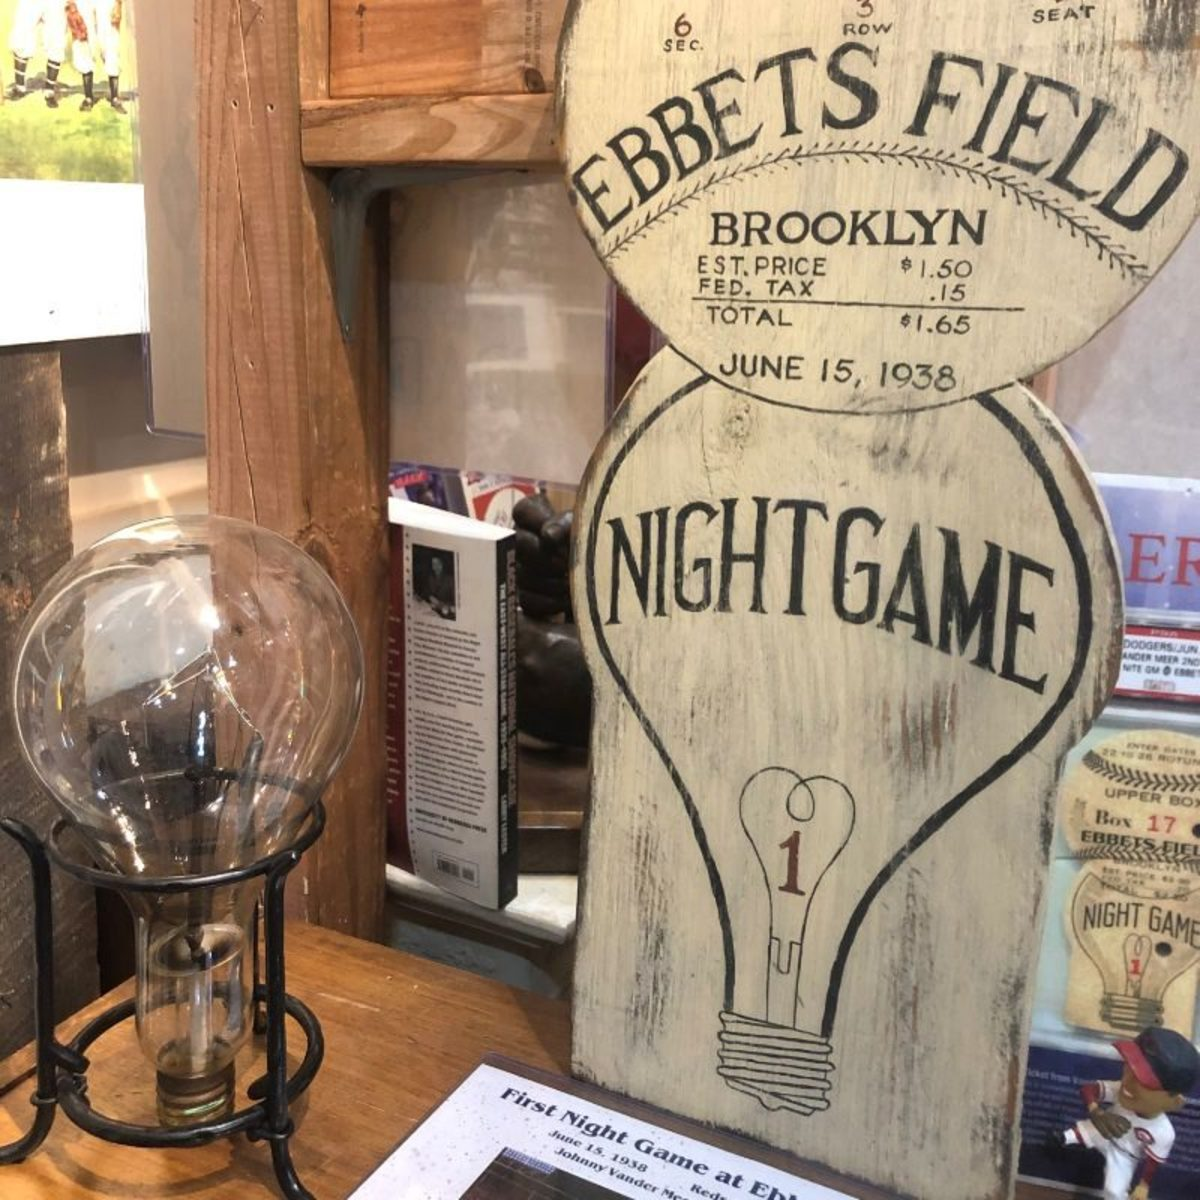 Ebbets Field exhibit at the National Ballpark Museum.